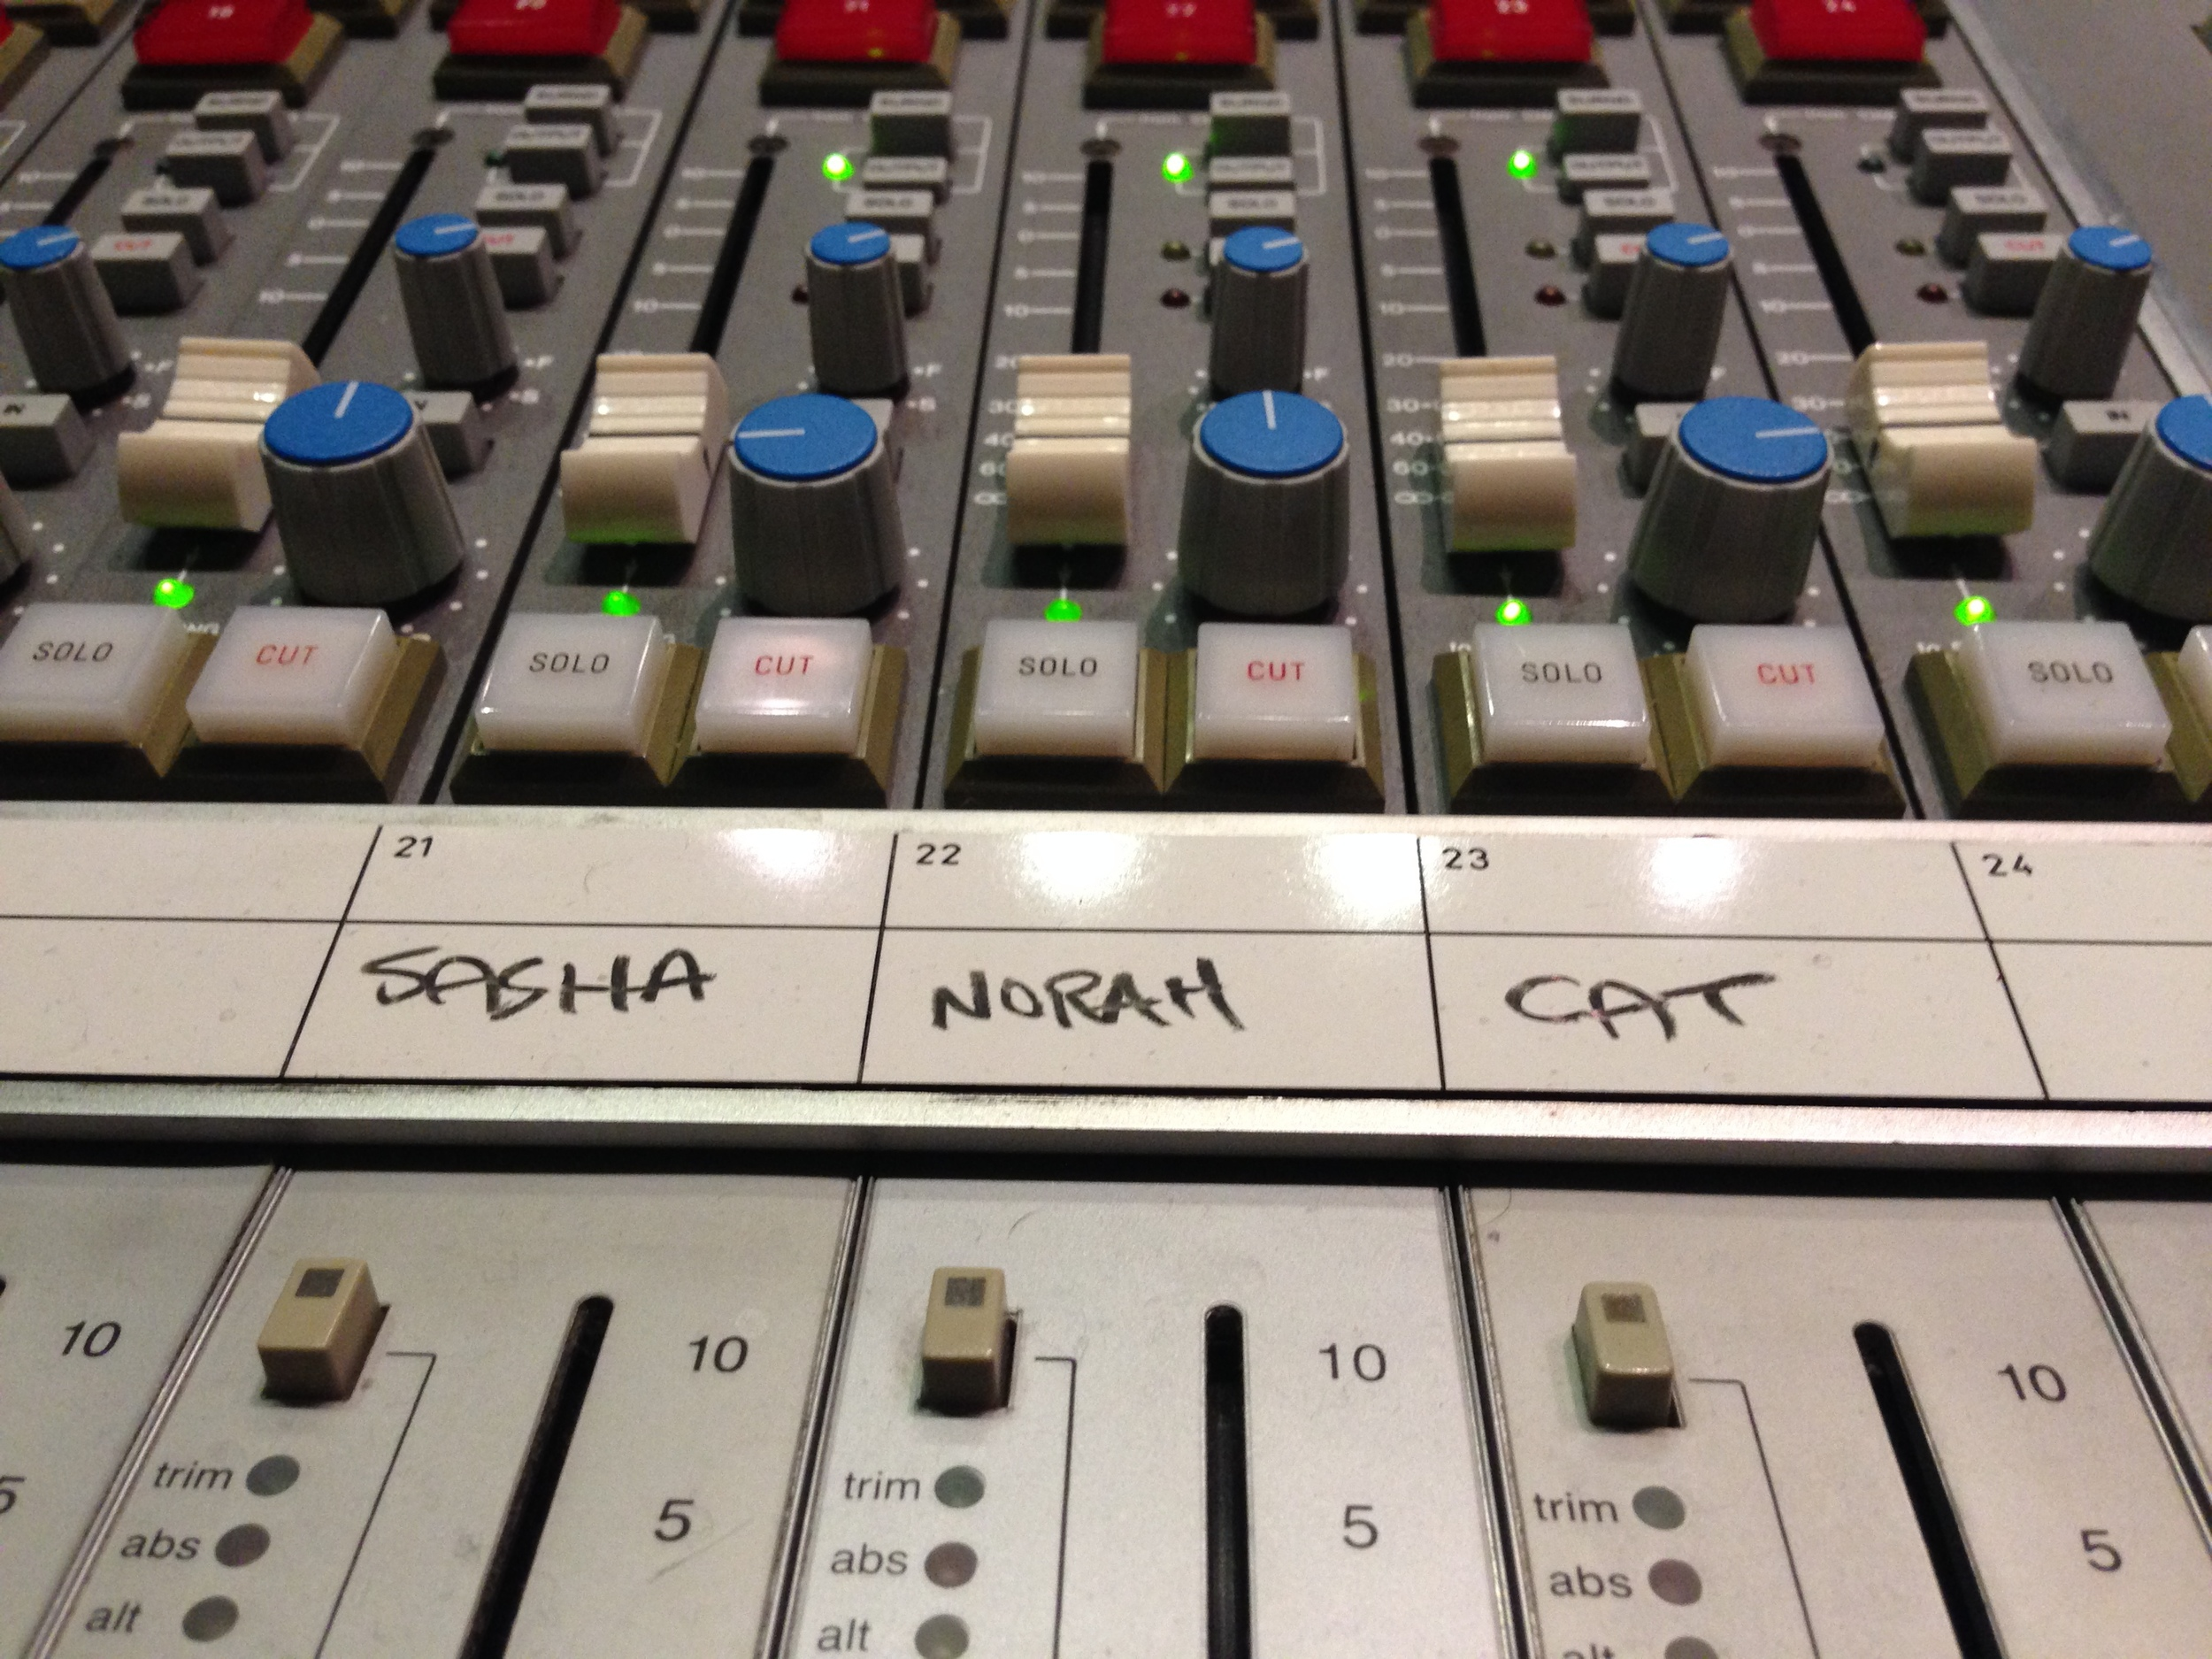 Sasha Dobson, Norah Jones, Cat Popper: Puss-N-Boots record mixing.